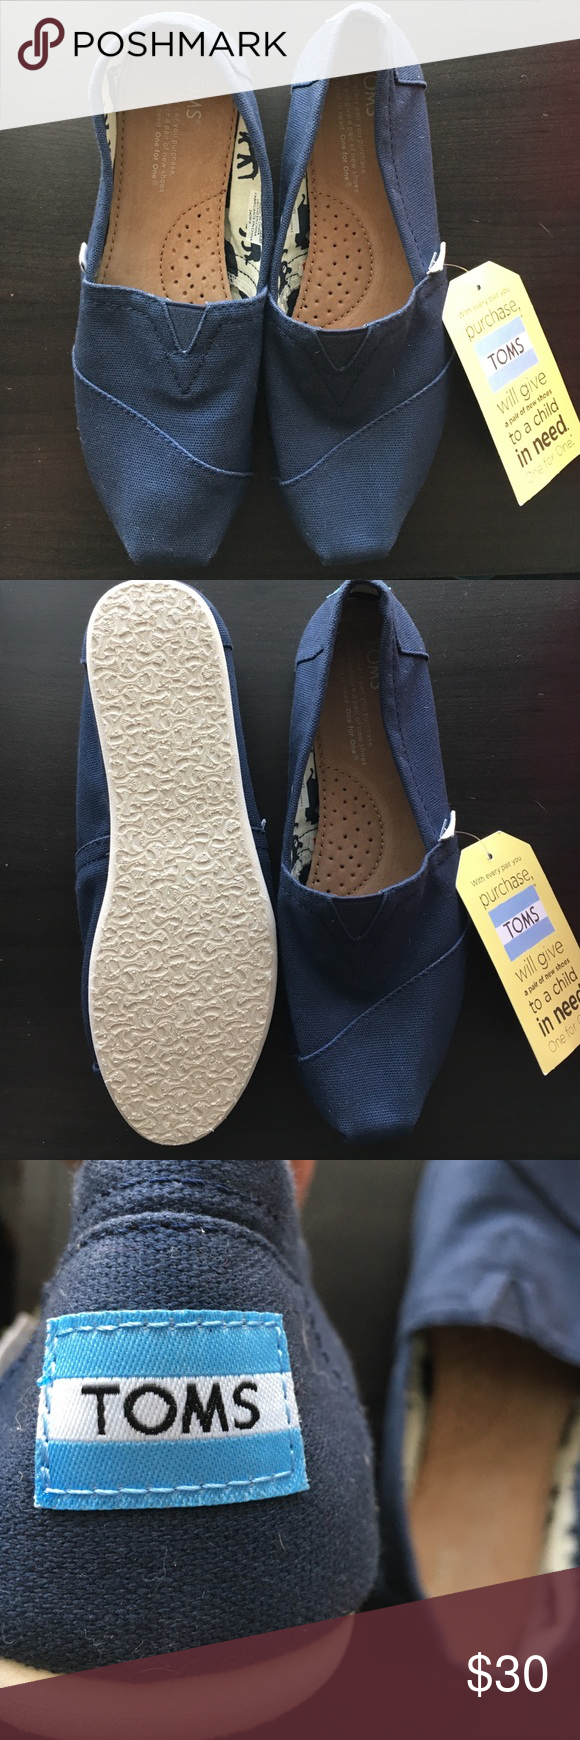 a50bfe5b645 TOMS classics Classic slip on • canvas • navy blue • brand new with tag •  never worn TOMS Shoes Flats   Loafers